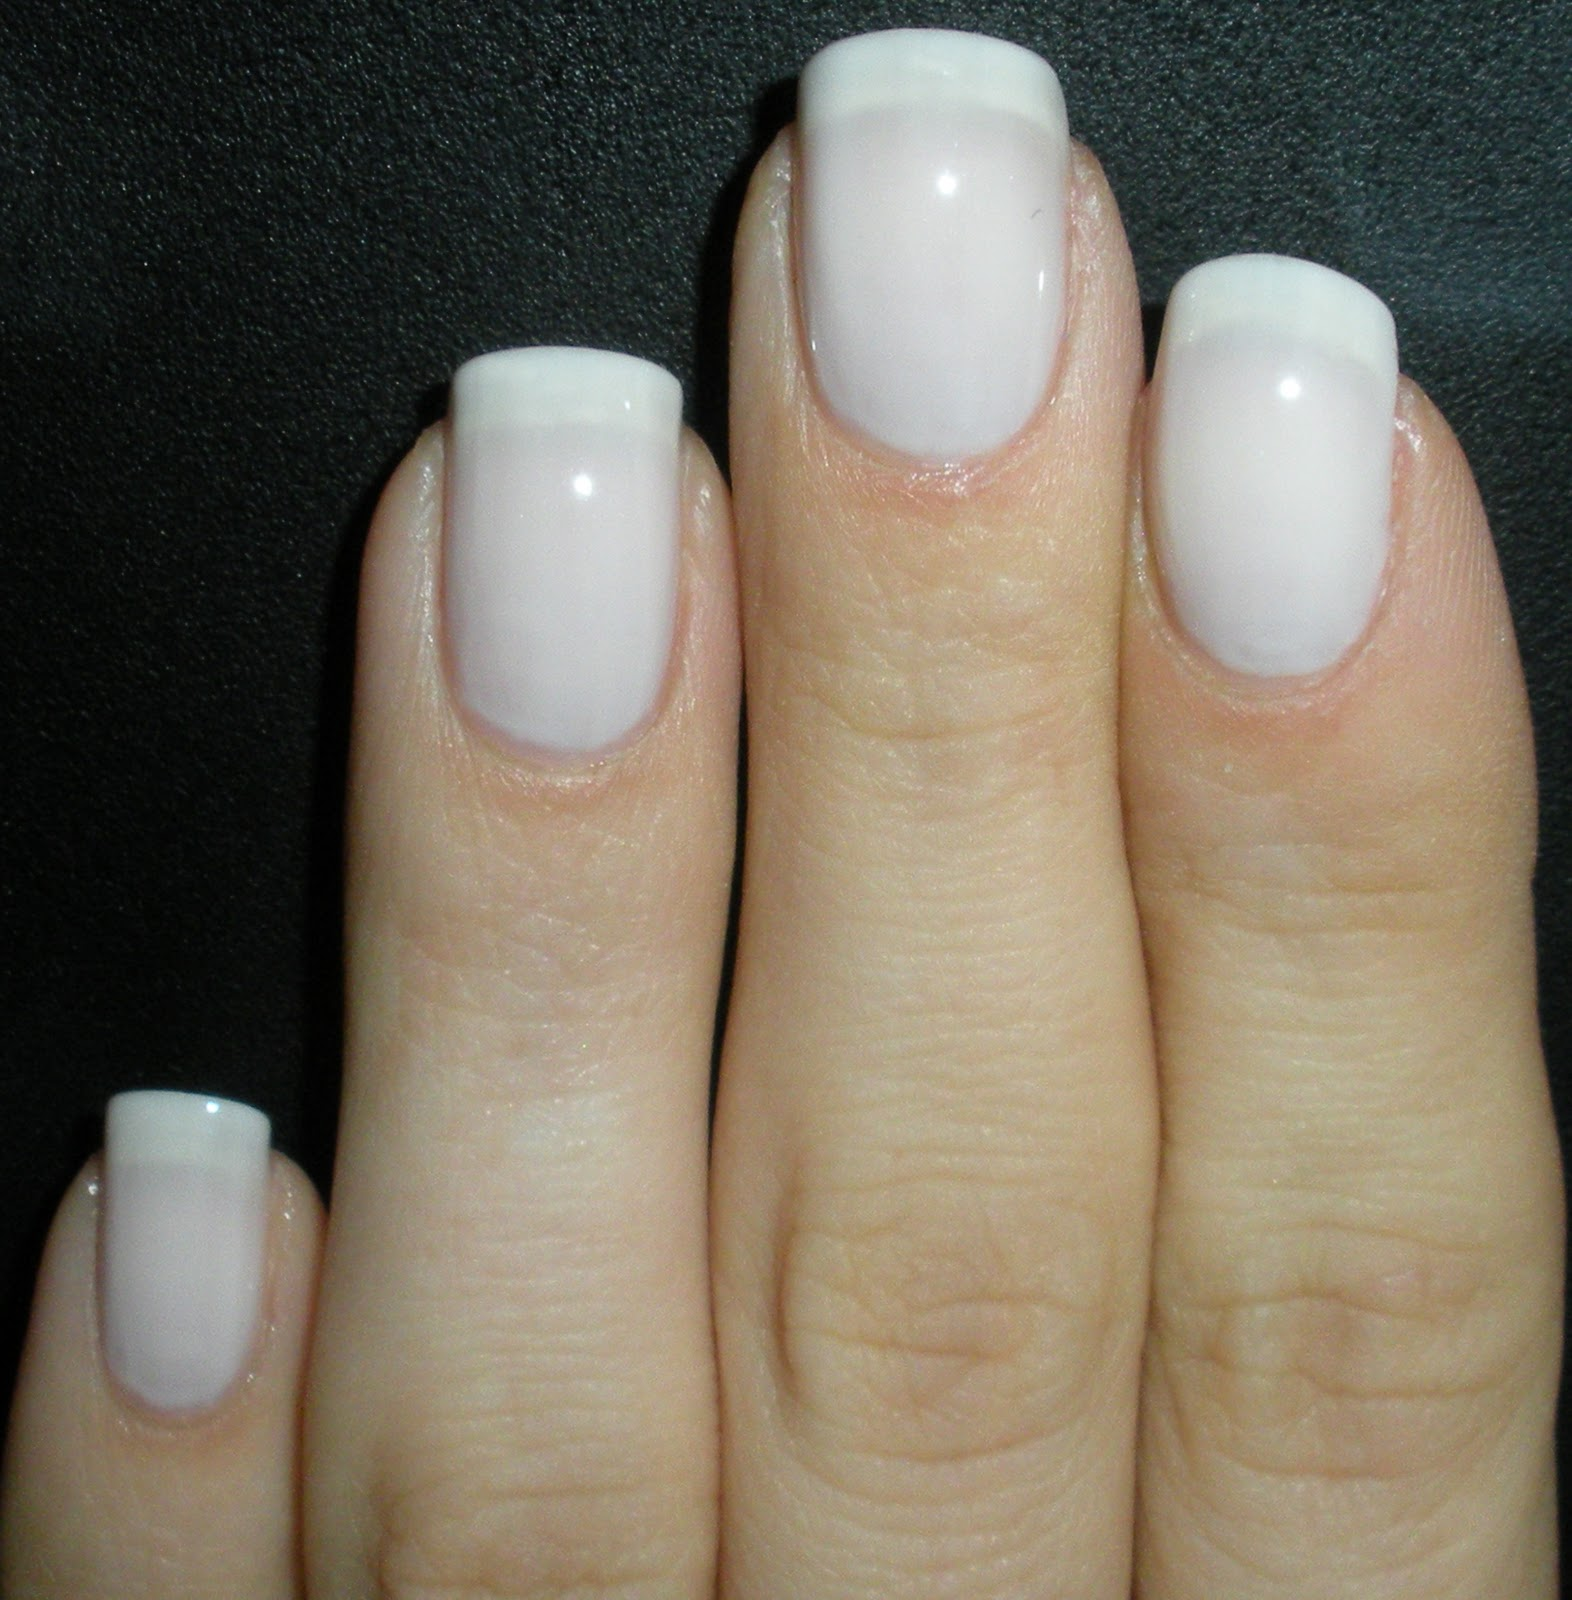 On The Second Day Make Sure Your Nails Are Clean And Dry I Lied A Third Coat Of Color Since Think It Looks Best This Way